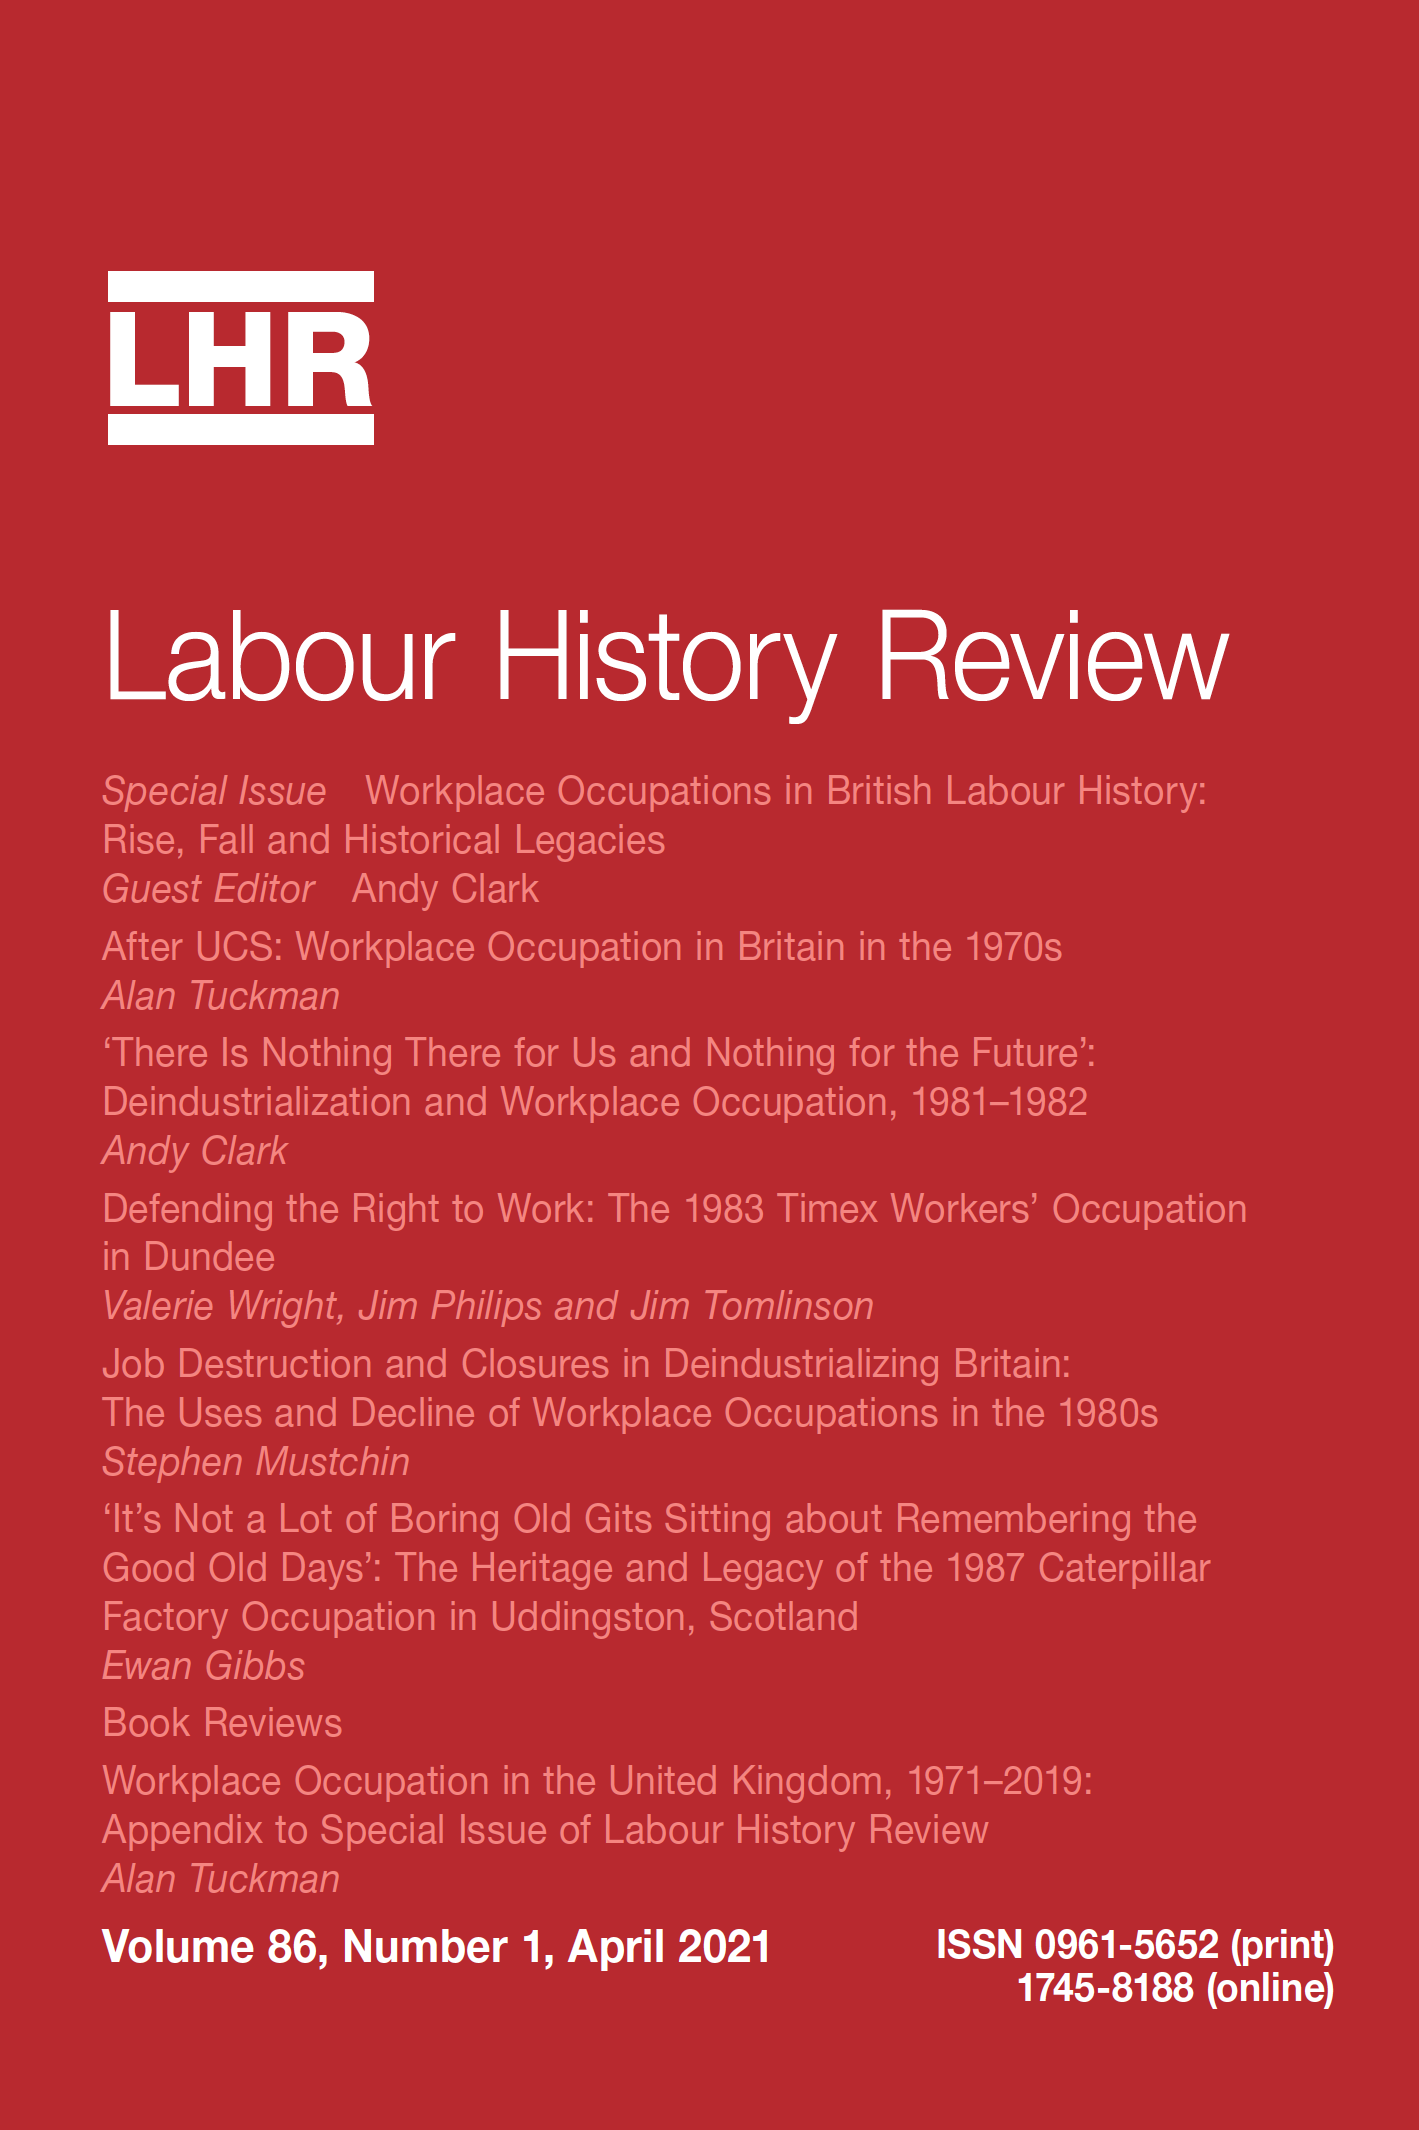 link to Labour History Review article